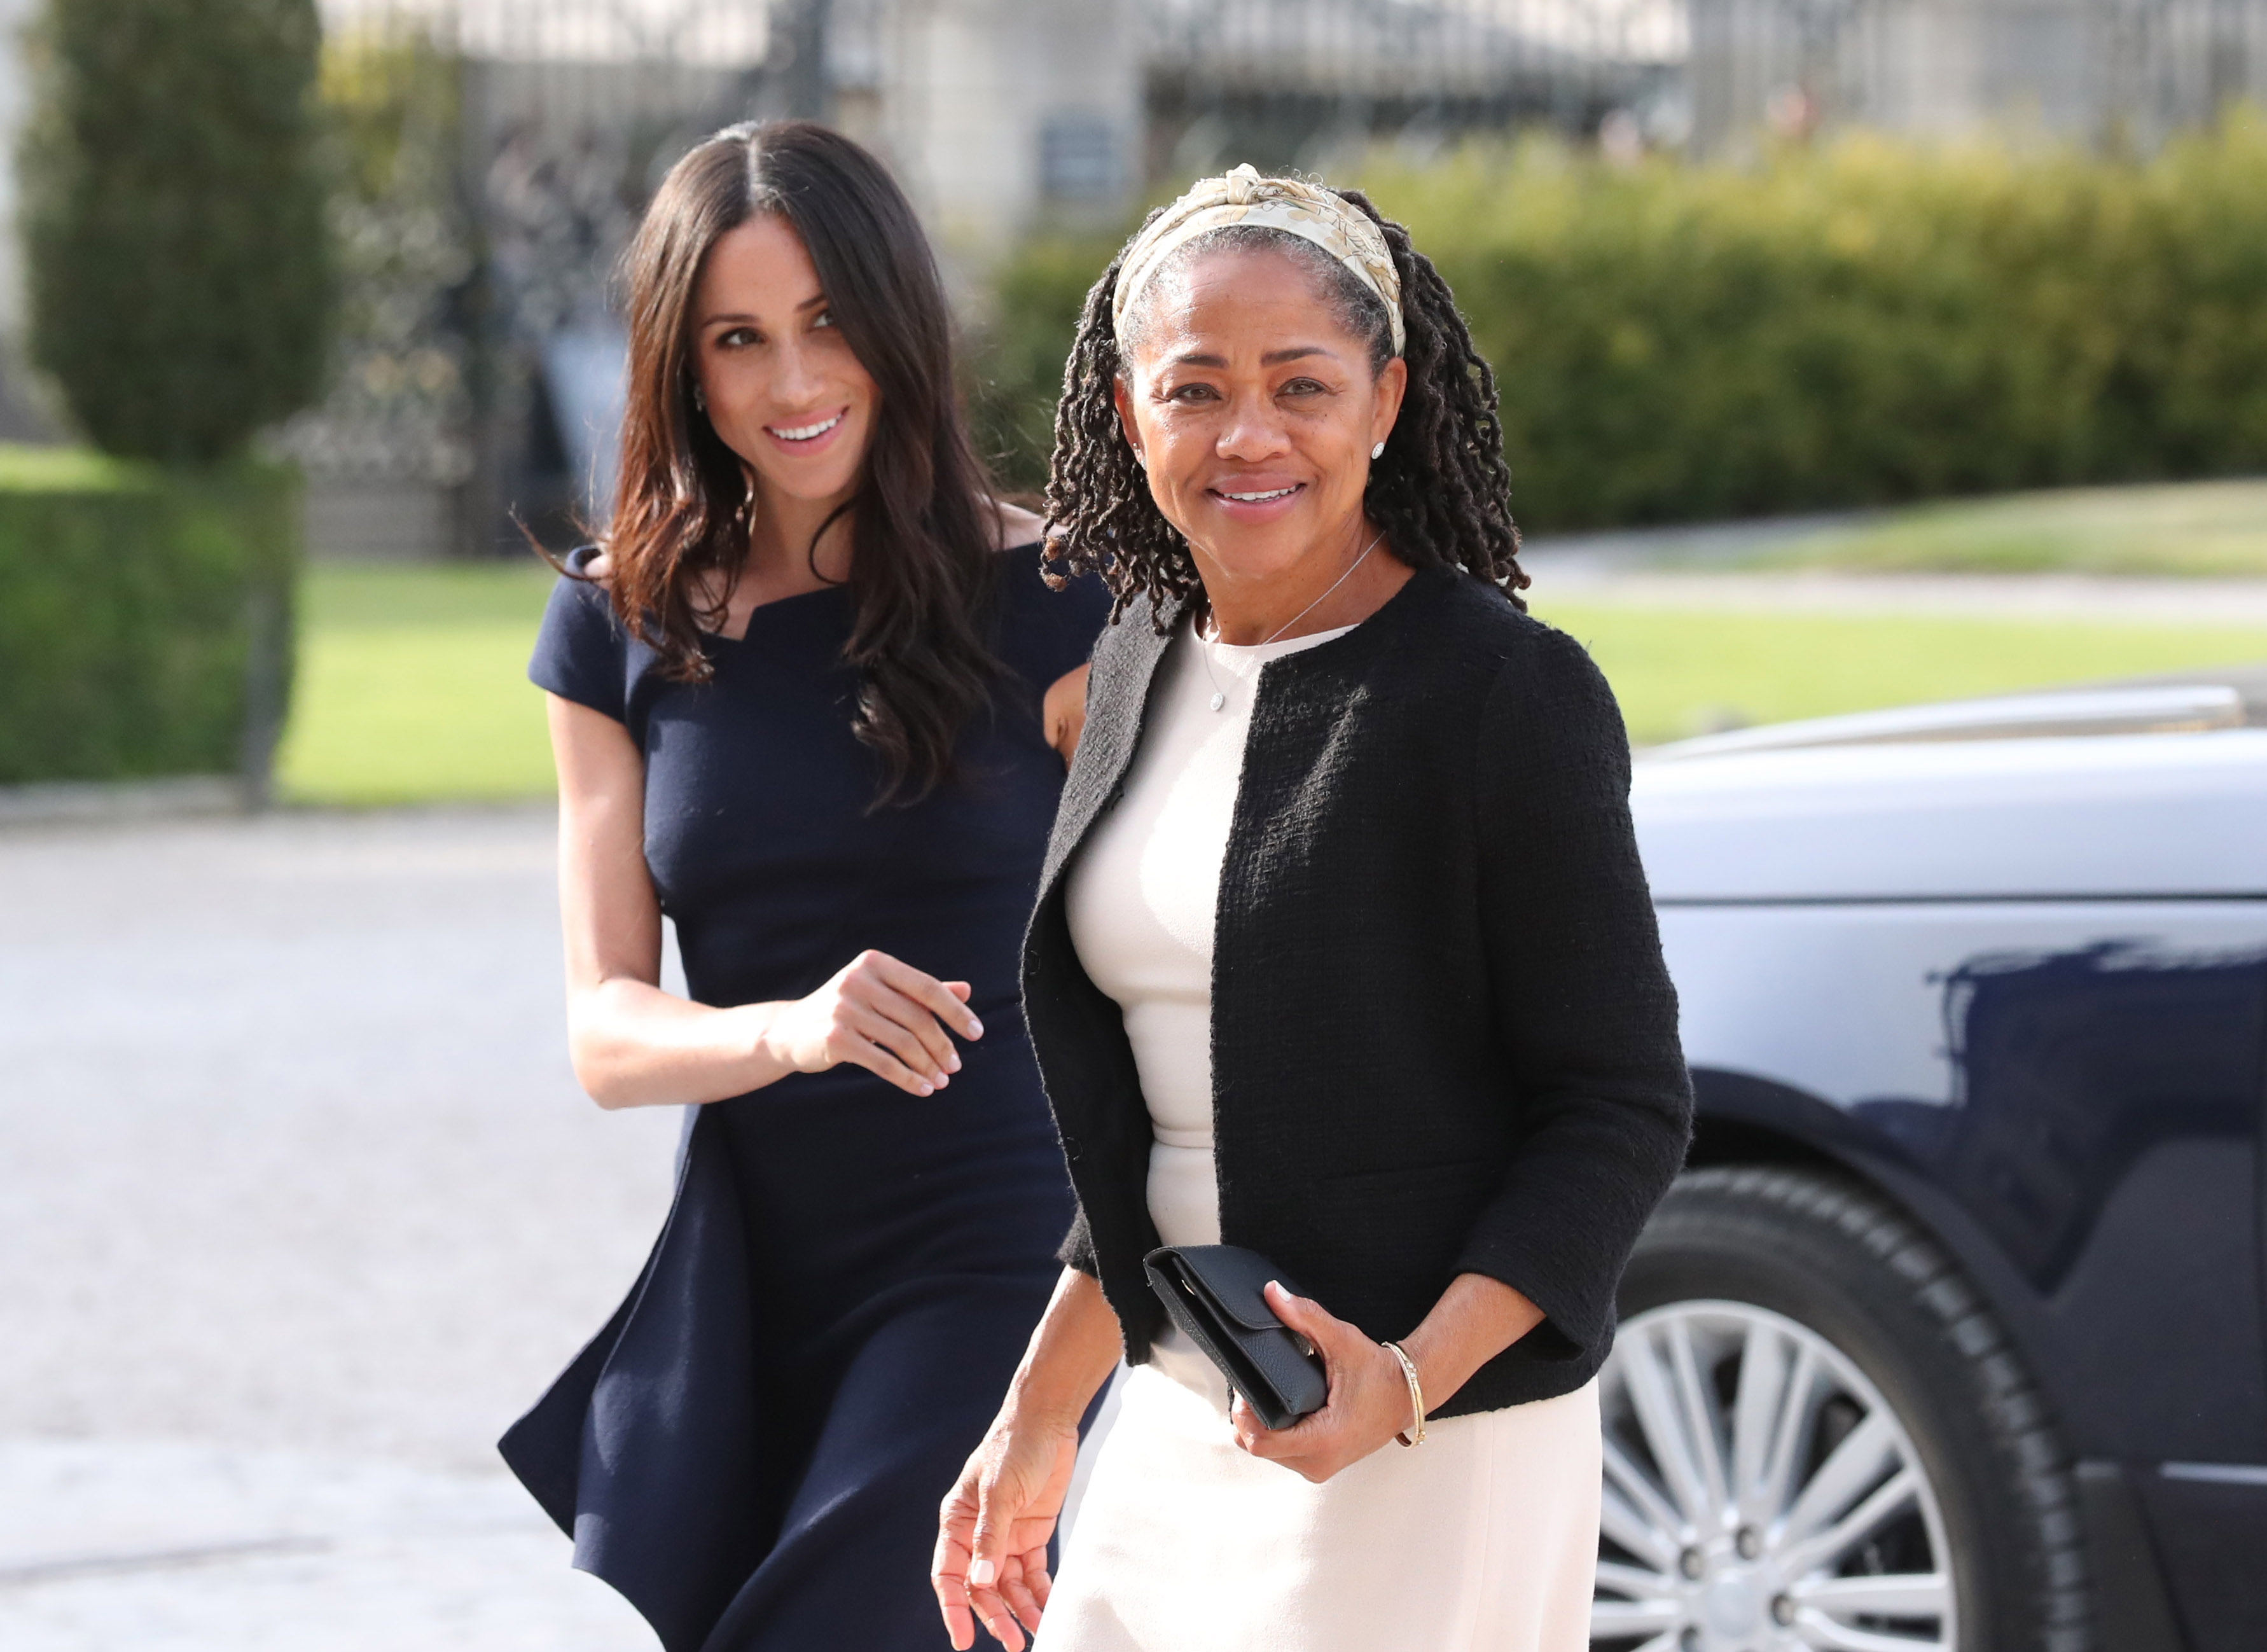 Meghan Markle and her mother, Doria Ragland, arrive at Cliveden House Hotel on the National Trust's Cliveden Estate to spend the night before her wedding to Prince Harry on May 18, 2018, in Berkshire, England. (Getty Images)